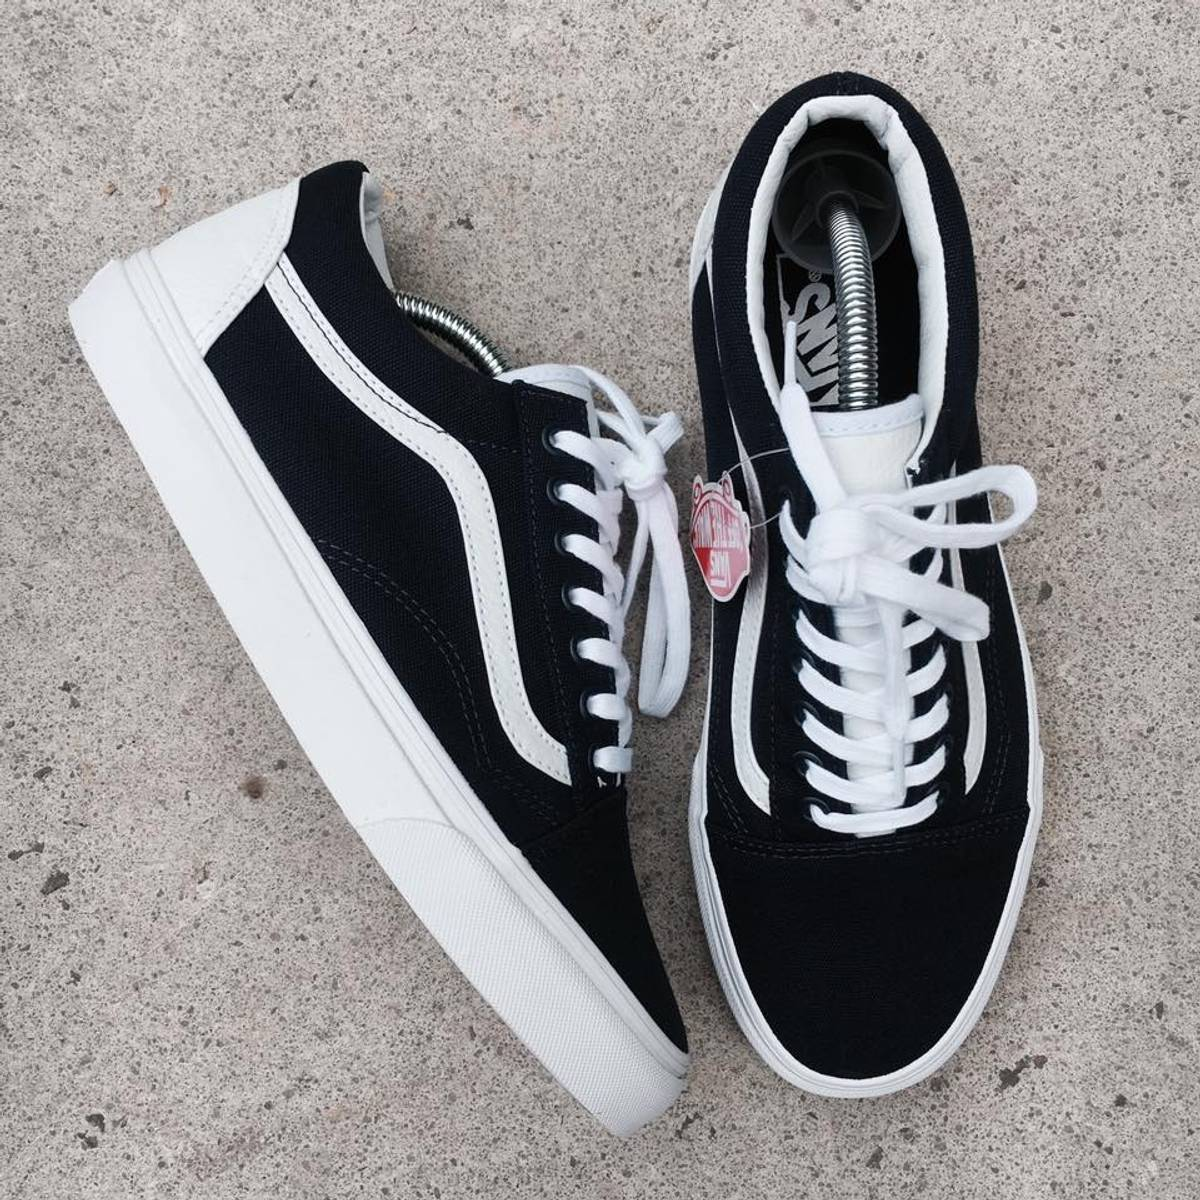 543ab113336 Vans Vans Old Skool X Footlocker Exclusive  College  Size 7.5 - Low-Top  Sneakers for Sale - Grailed